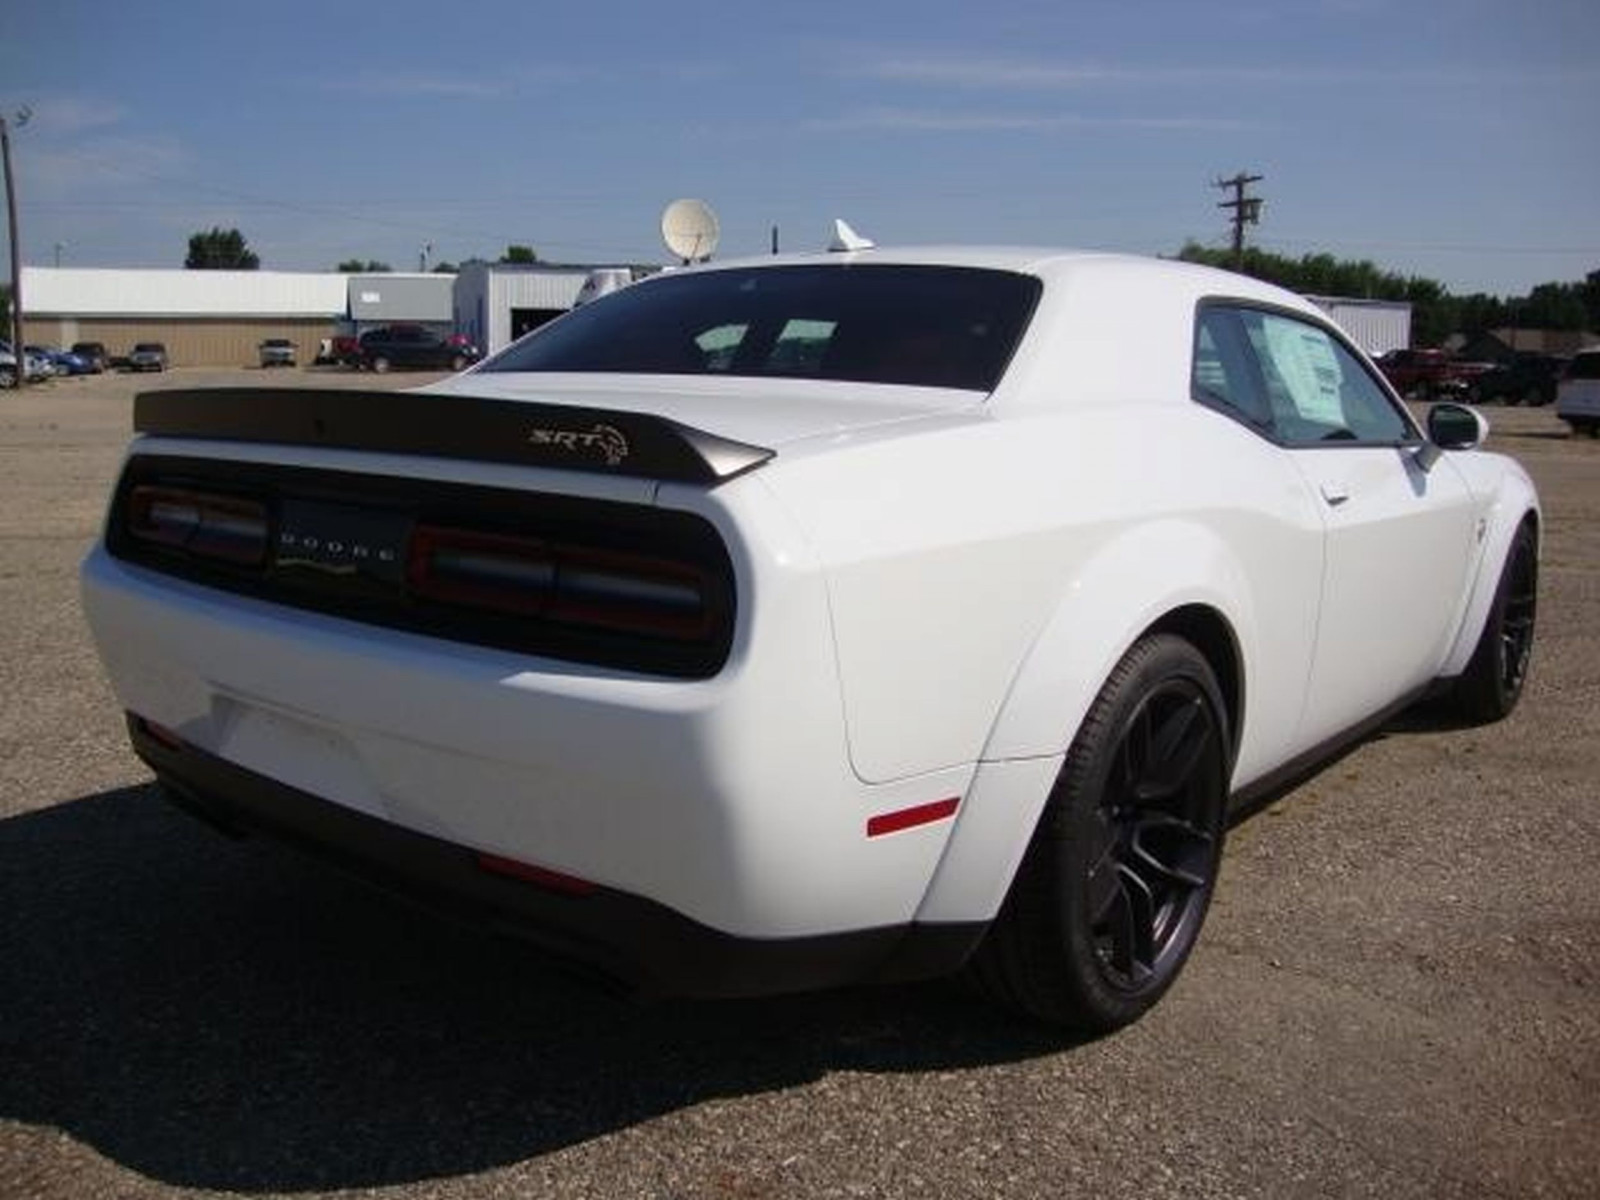 2018 Dodge Challenger Hell Cat SRT Wide Body - Image 7